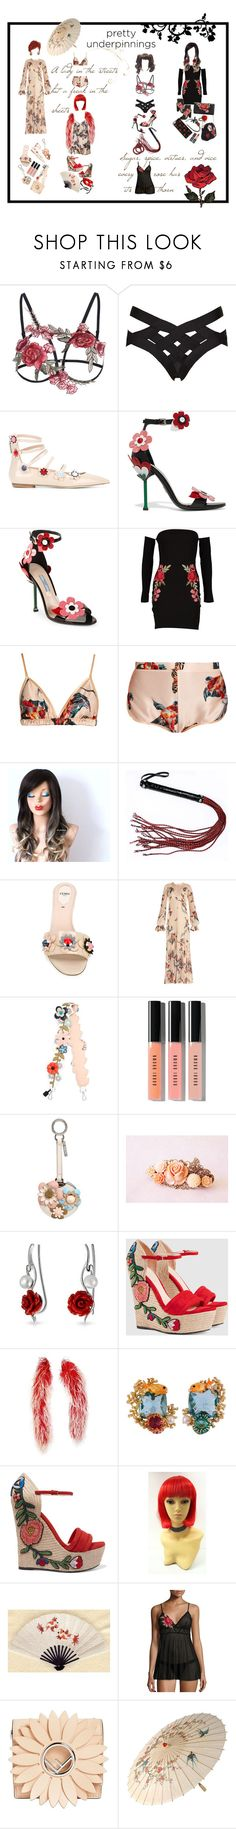 """pretty underpinings: unleashing the beast, sexy underpinnings"" by potterfluff7 ❤ liked on Polyvore featuring Agent Provocateur, Fendi, Prada, Boohoo, Katie Eary, Bobbi Brown Cosmetics, Gucci, Les Néréides and Hanky Panky"